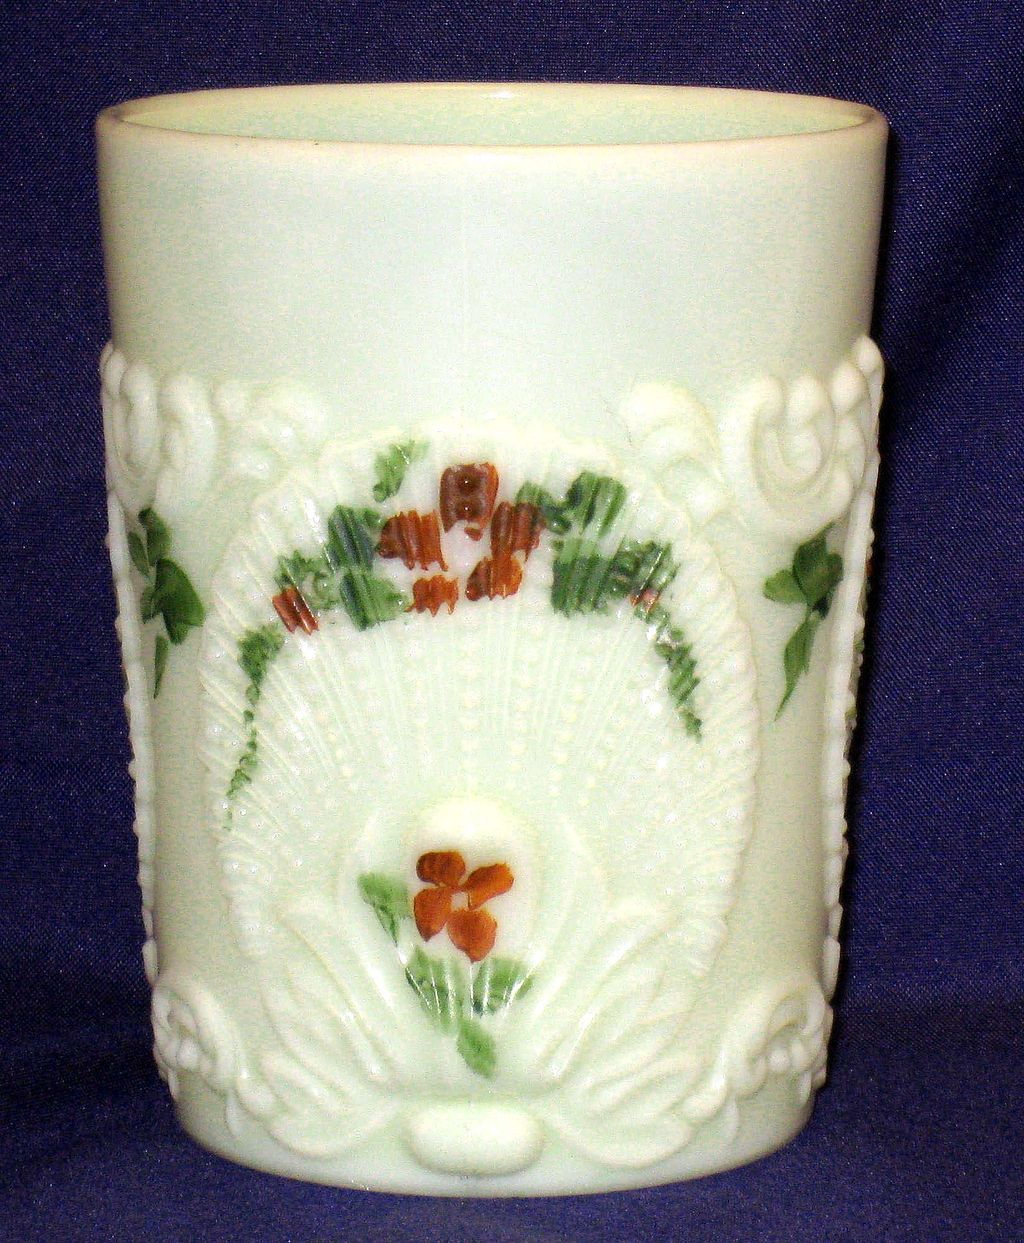 Northwood Geneva custard glass tumbler - shell design